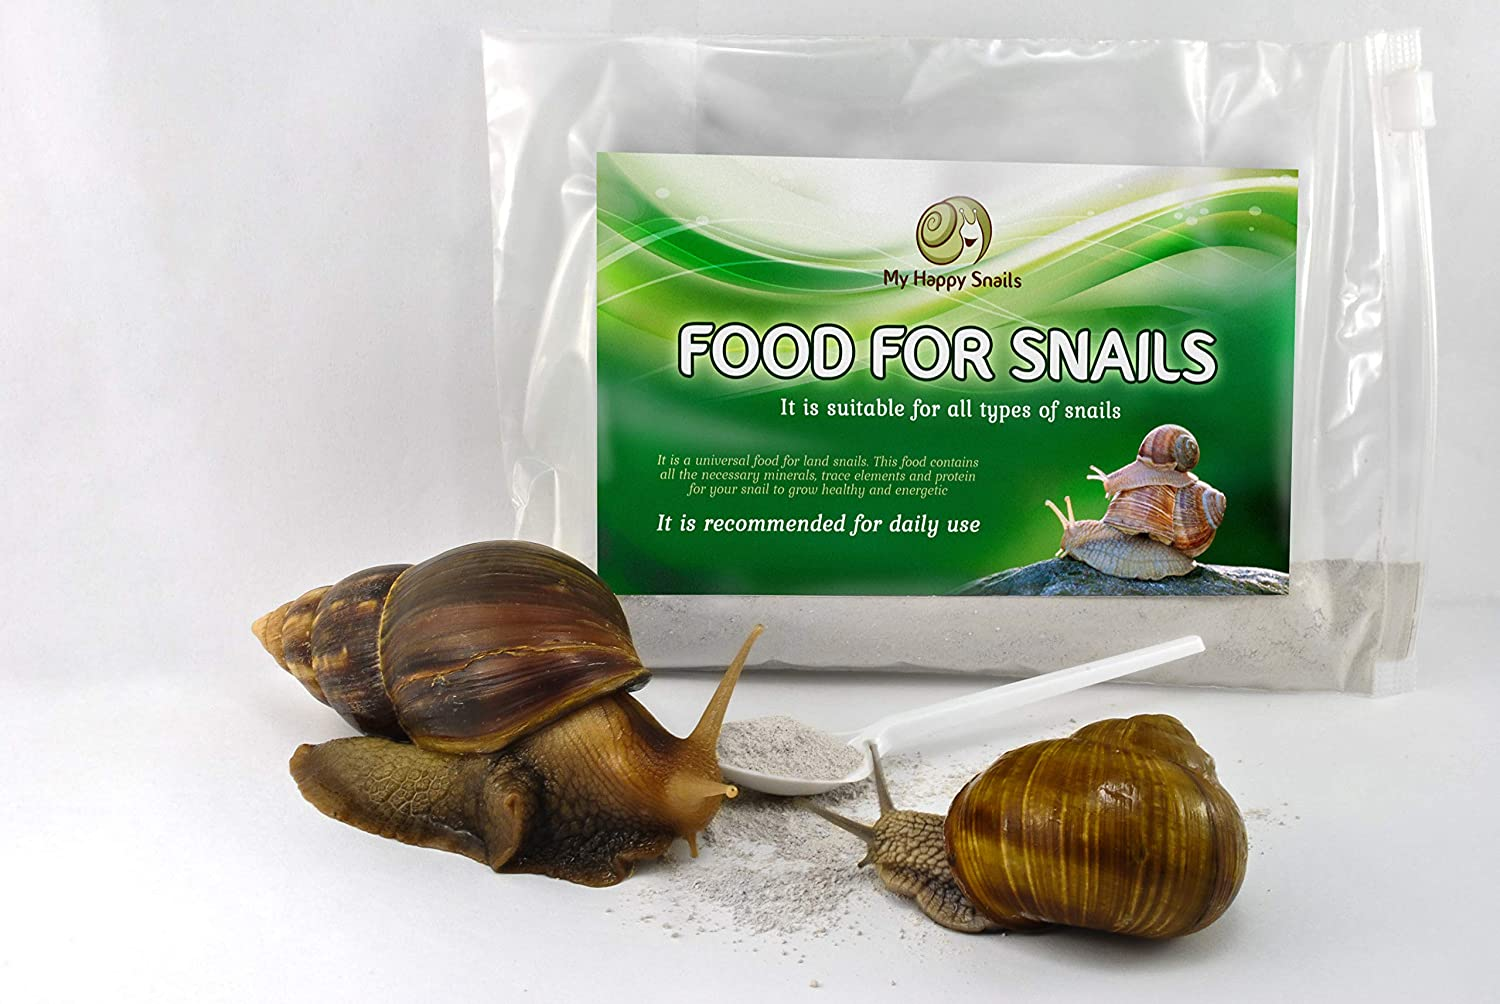 Land SnailFood - Land Snail Food Protein + Calcium + Minerals - for All Types of Pet Snails : Garden Snail, Giant African Snail, Helix Aspersa, Pomatia etc